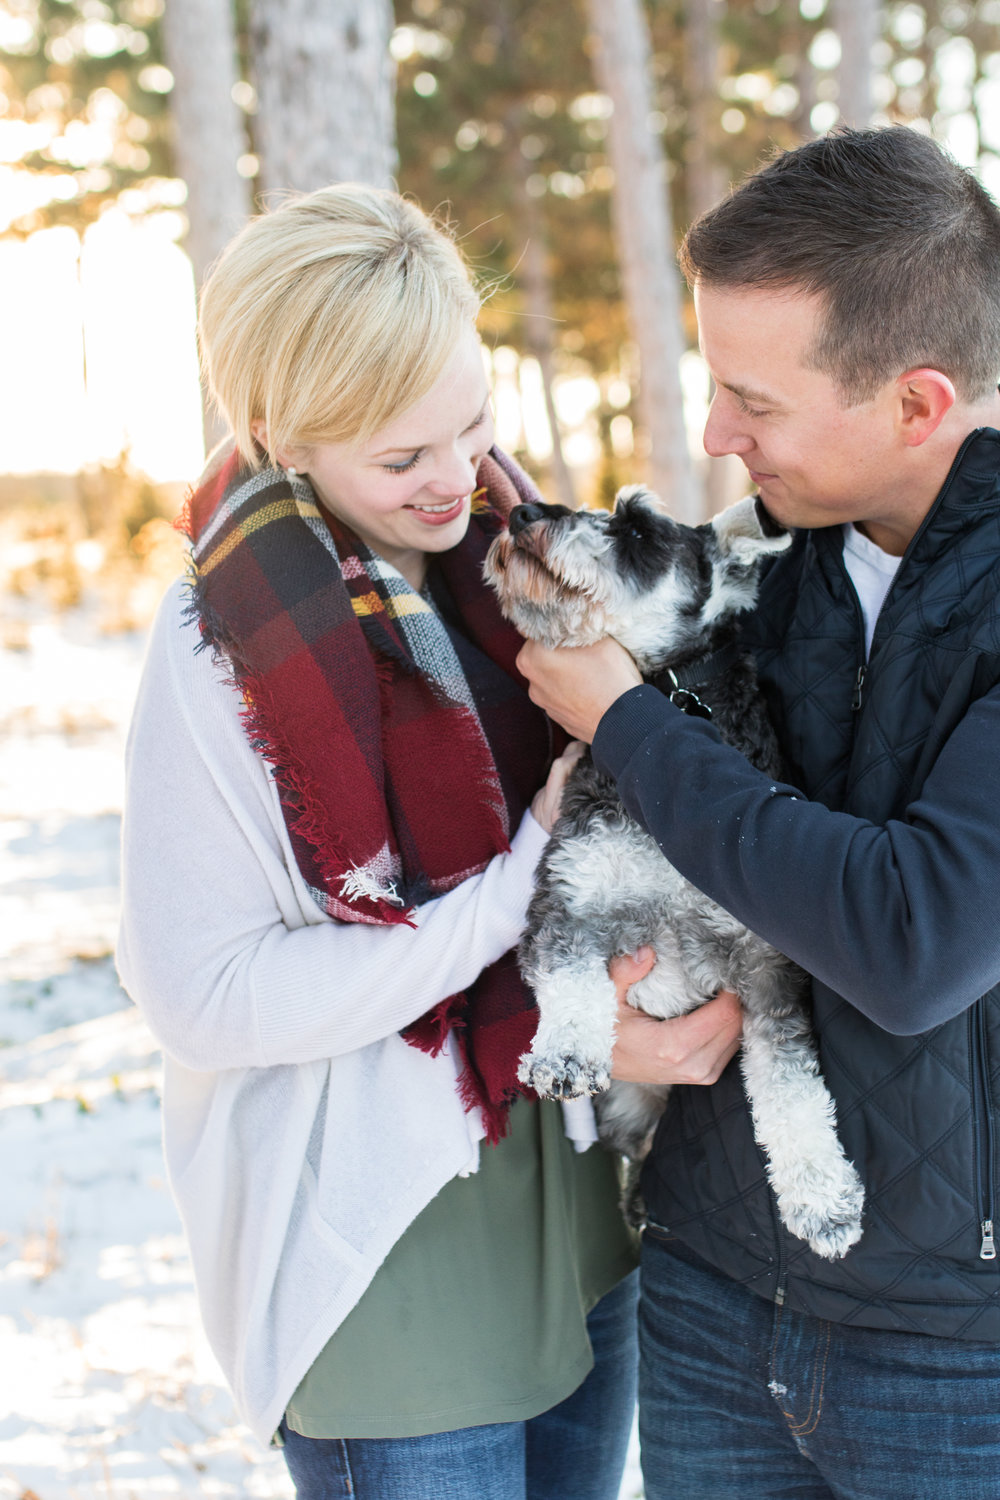 Nielsen Mini Session - Hansen Tree Farm -Sabrina Reis Photography - Minneapolis -19.jpg